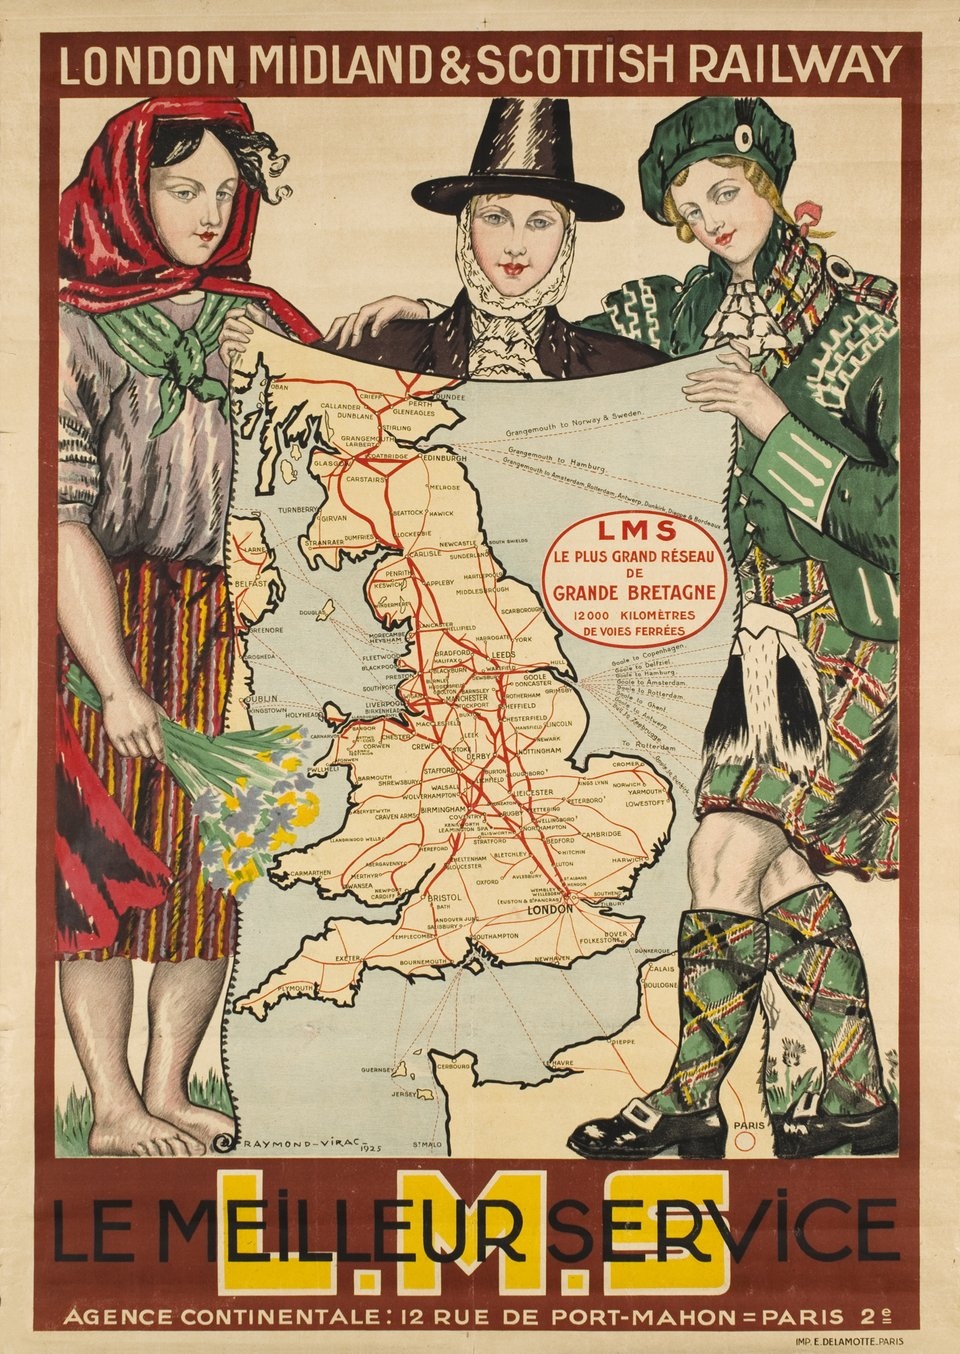 London Midland & Scottish Railway L.M.S. le meilleur service – Affiche ancienne – Raymond VIRAC – 1925